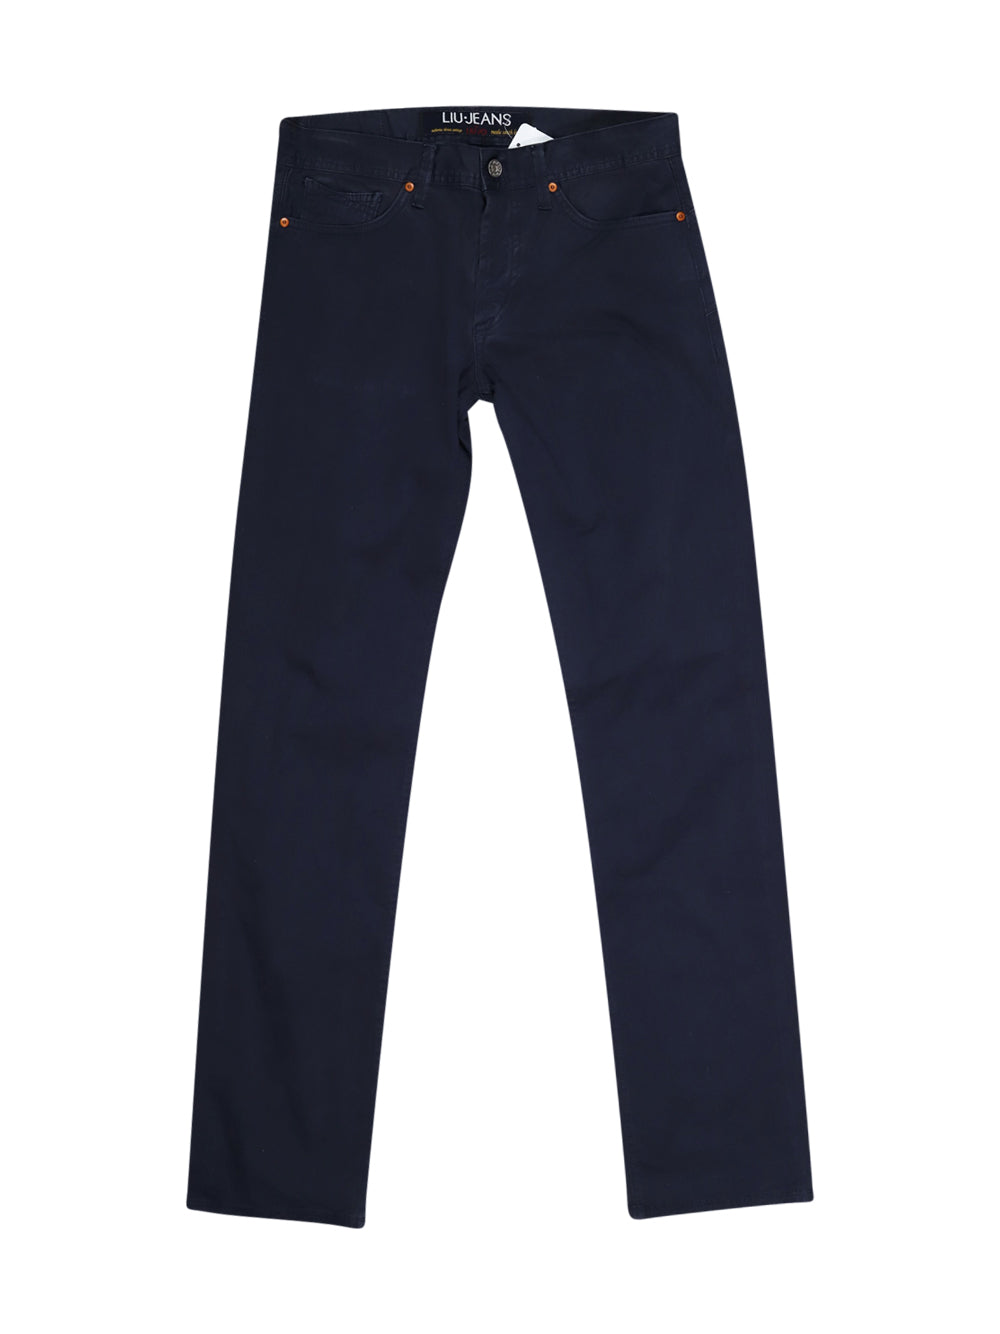 Front photo of Preloved Liu Jo Blue Man's trousers - size 36/S